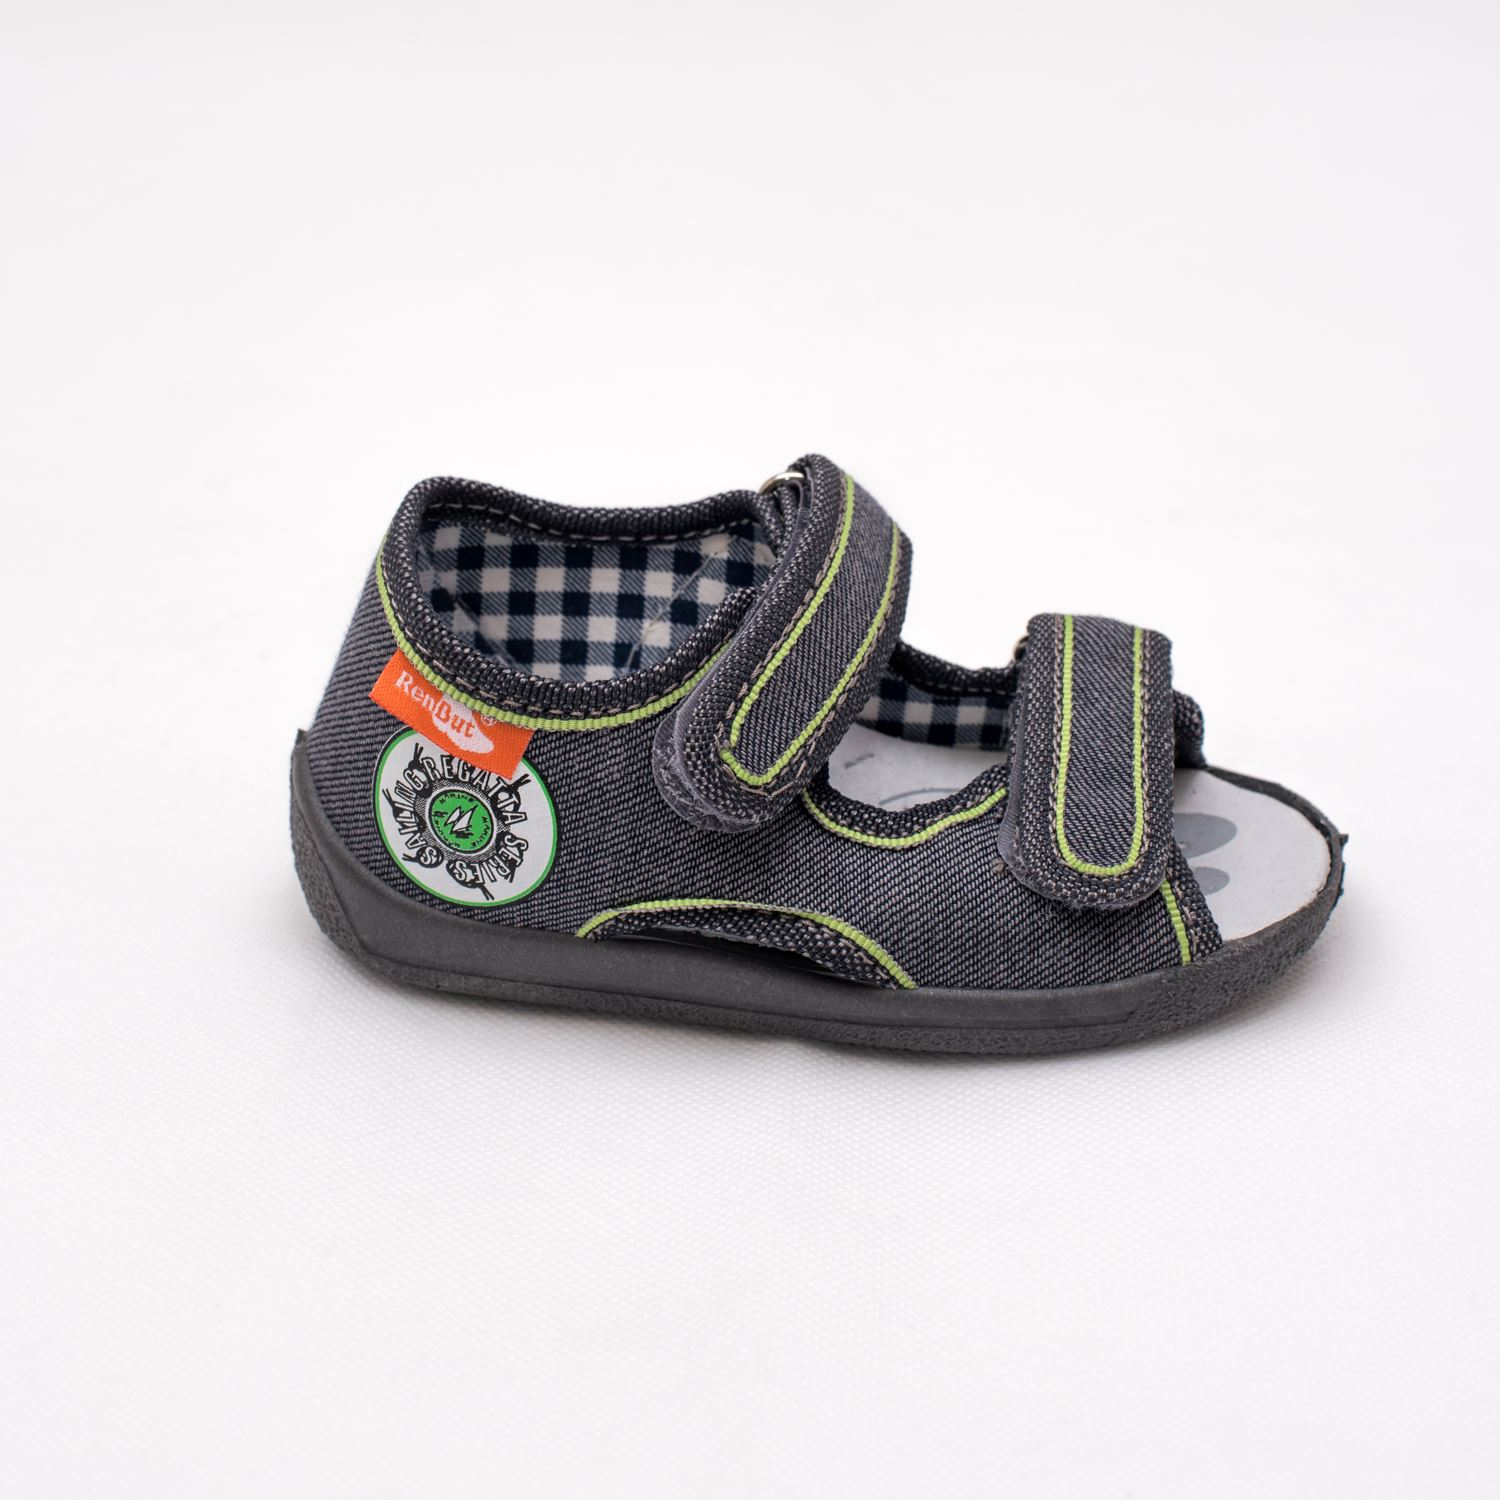 BABY BOYS CANVAS SHOES TODDLER SANDALS SLIPPERS TRAINERS